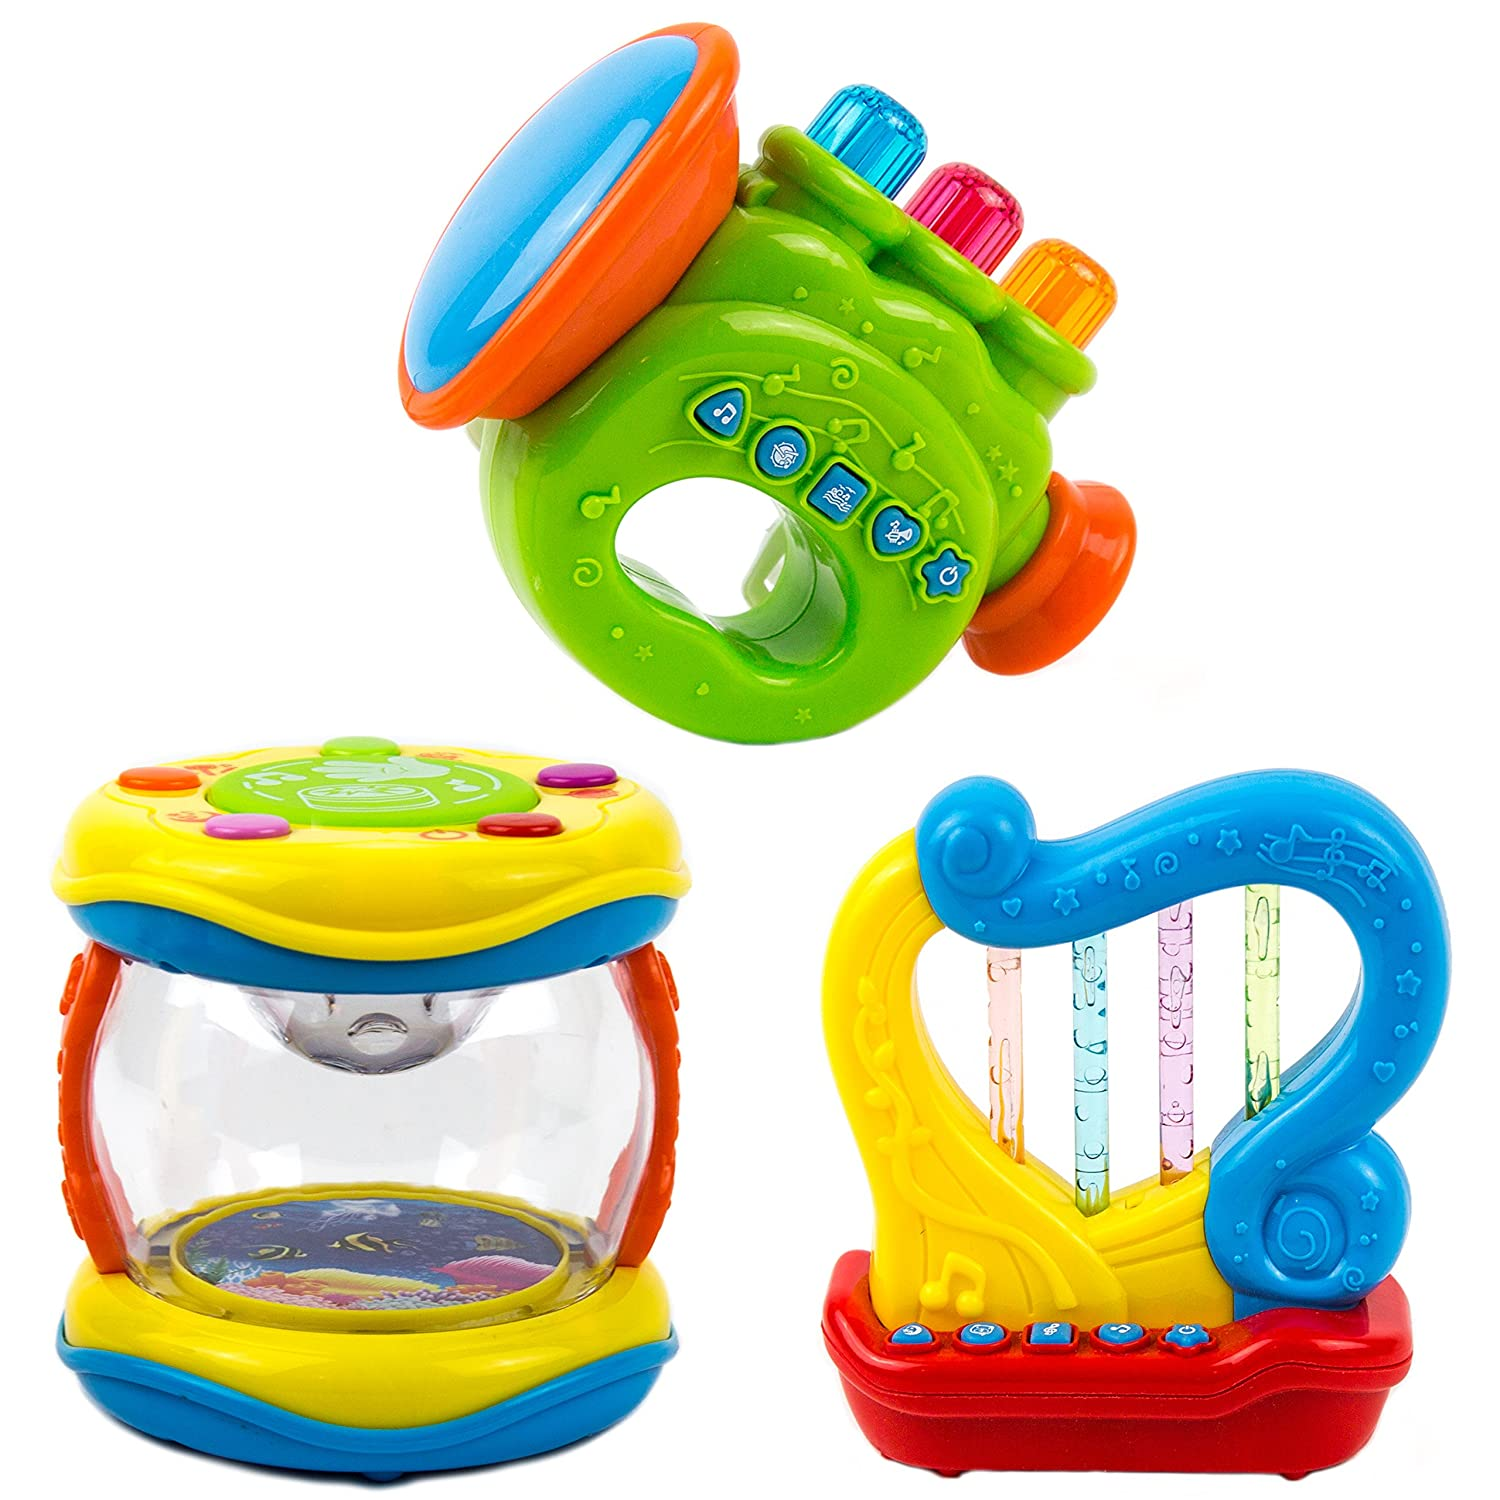 Toysery Portable Musical Toy Instruments for Toddlers, Kids - Educational Music Toy for Children